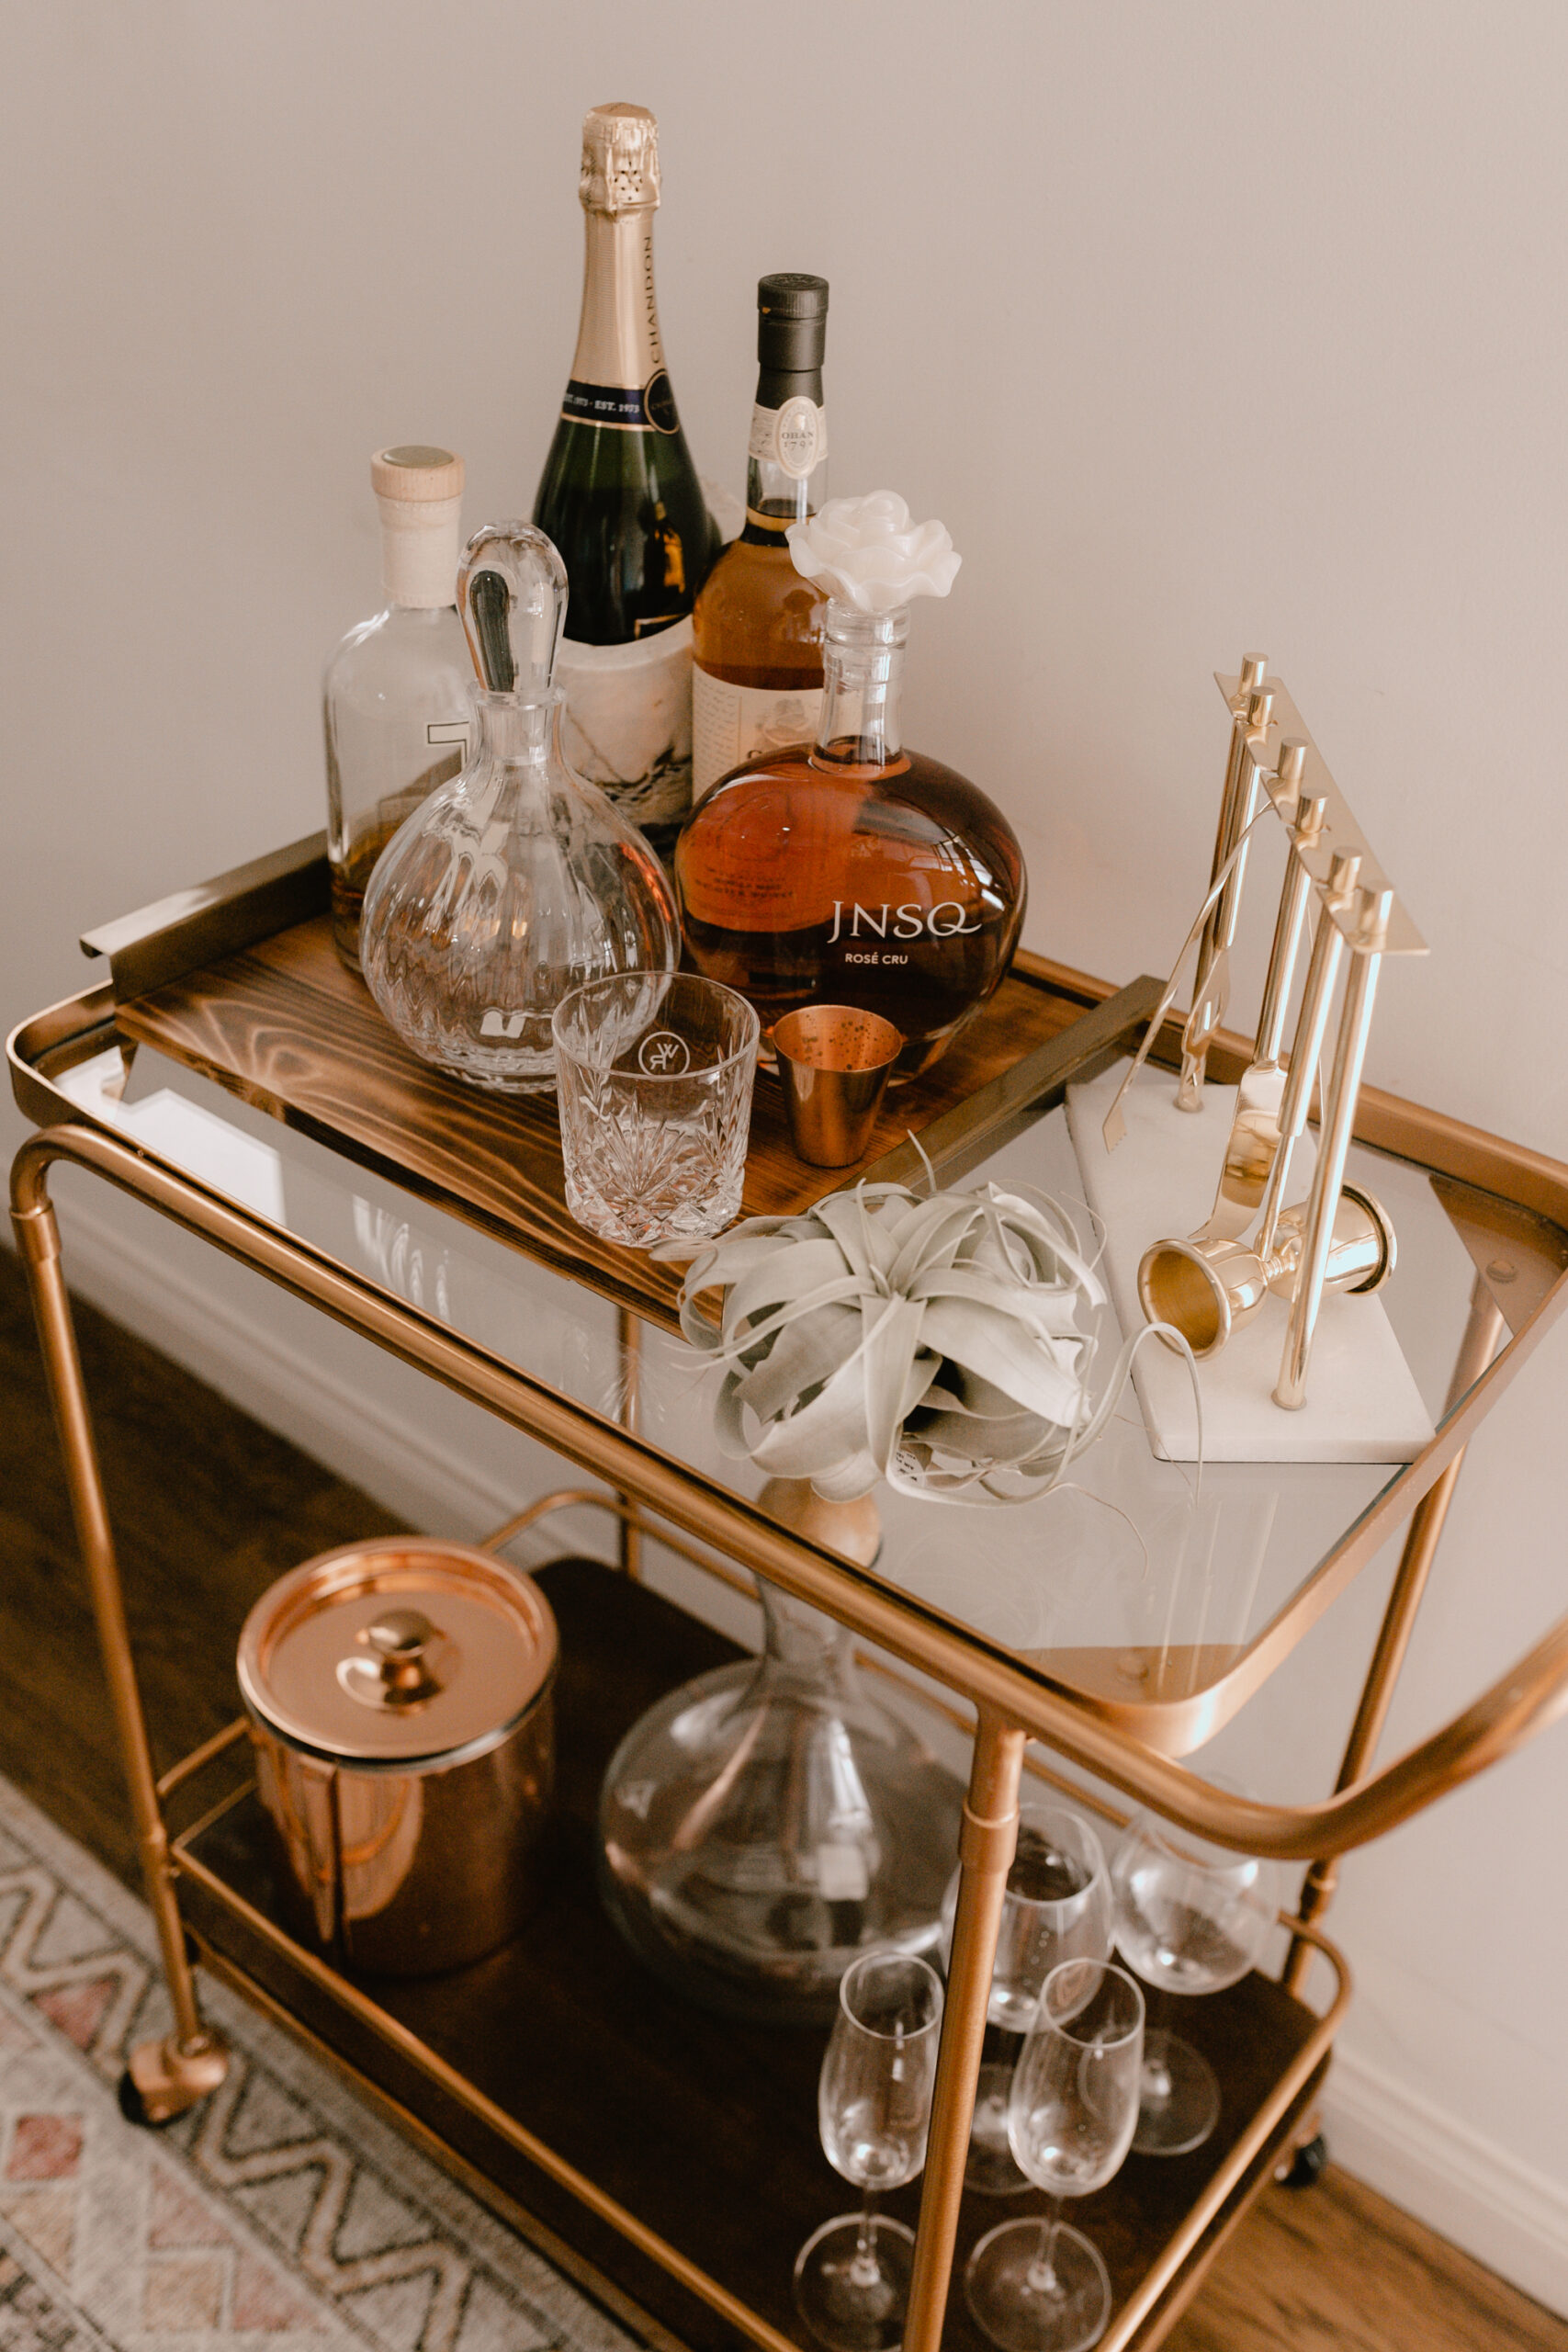 bar cart ready for the weekend! #theldlhome #barcart #barcartstyling